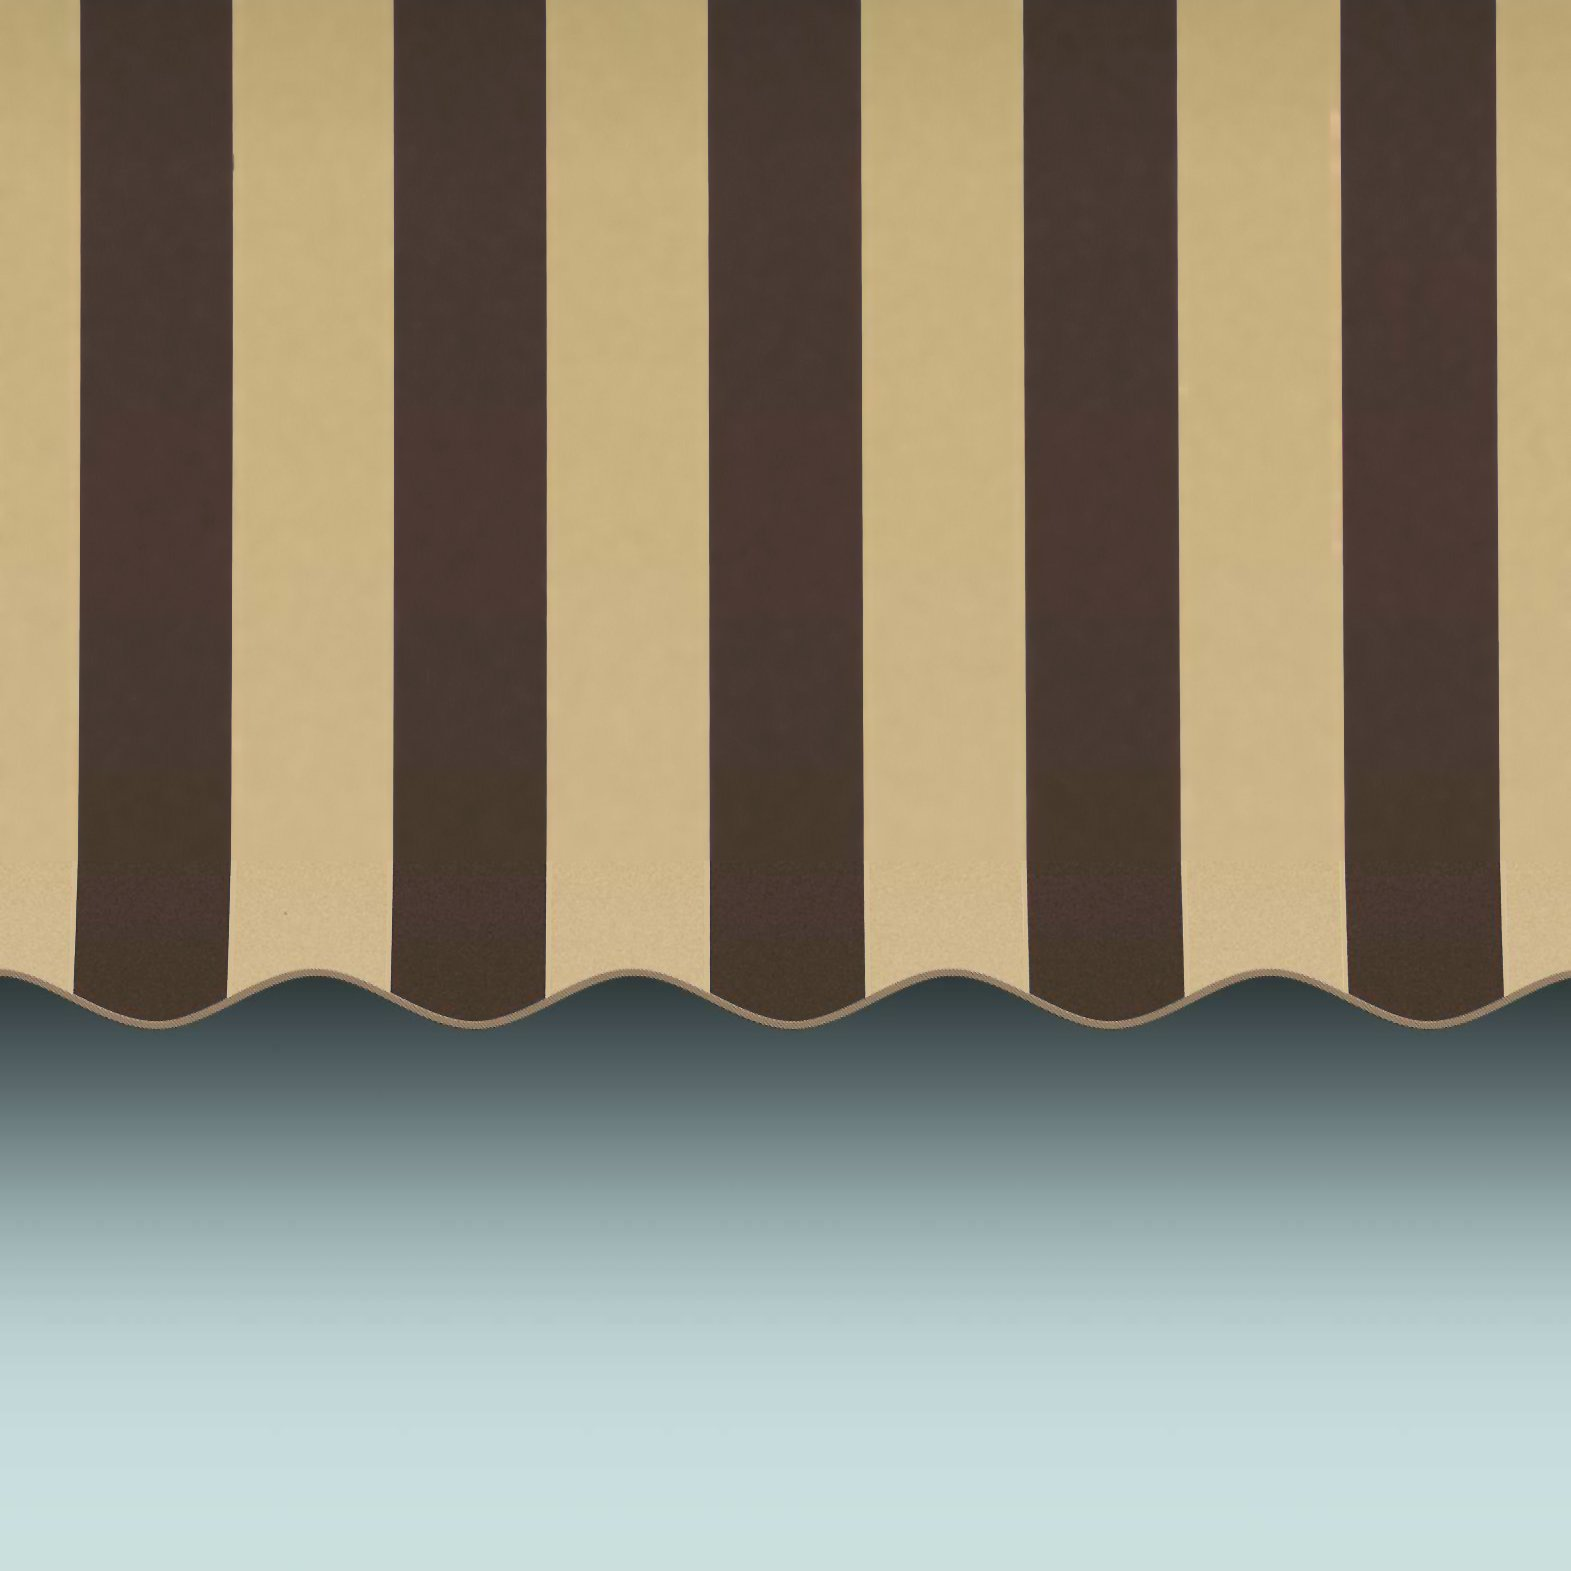 Awntech 3-Feet Dallas Retro Window/Entry Awning, 44 by 24-Inch, Brown/Tan